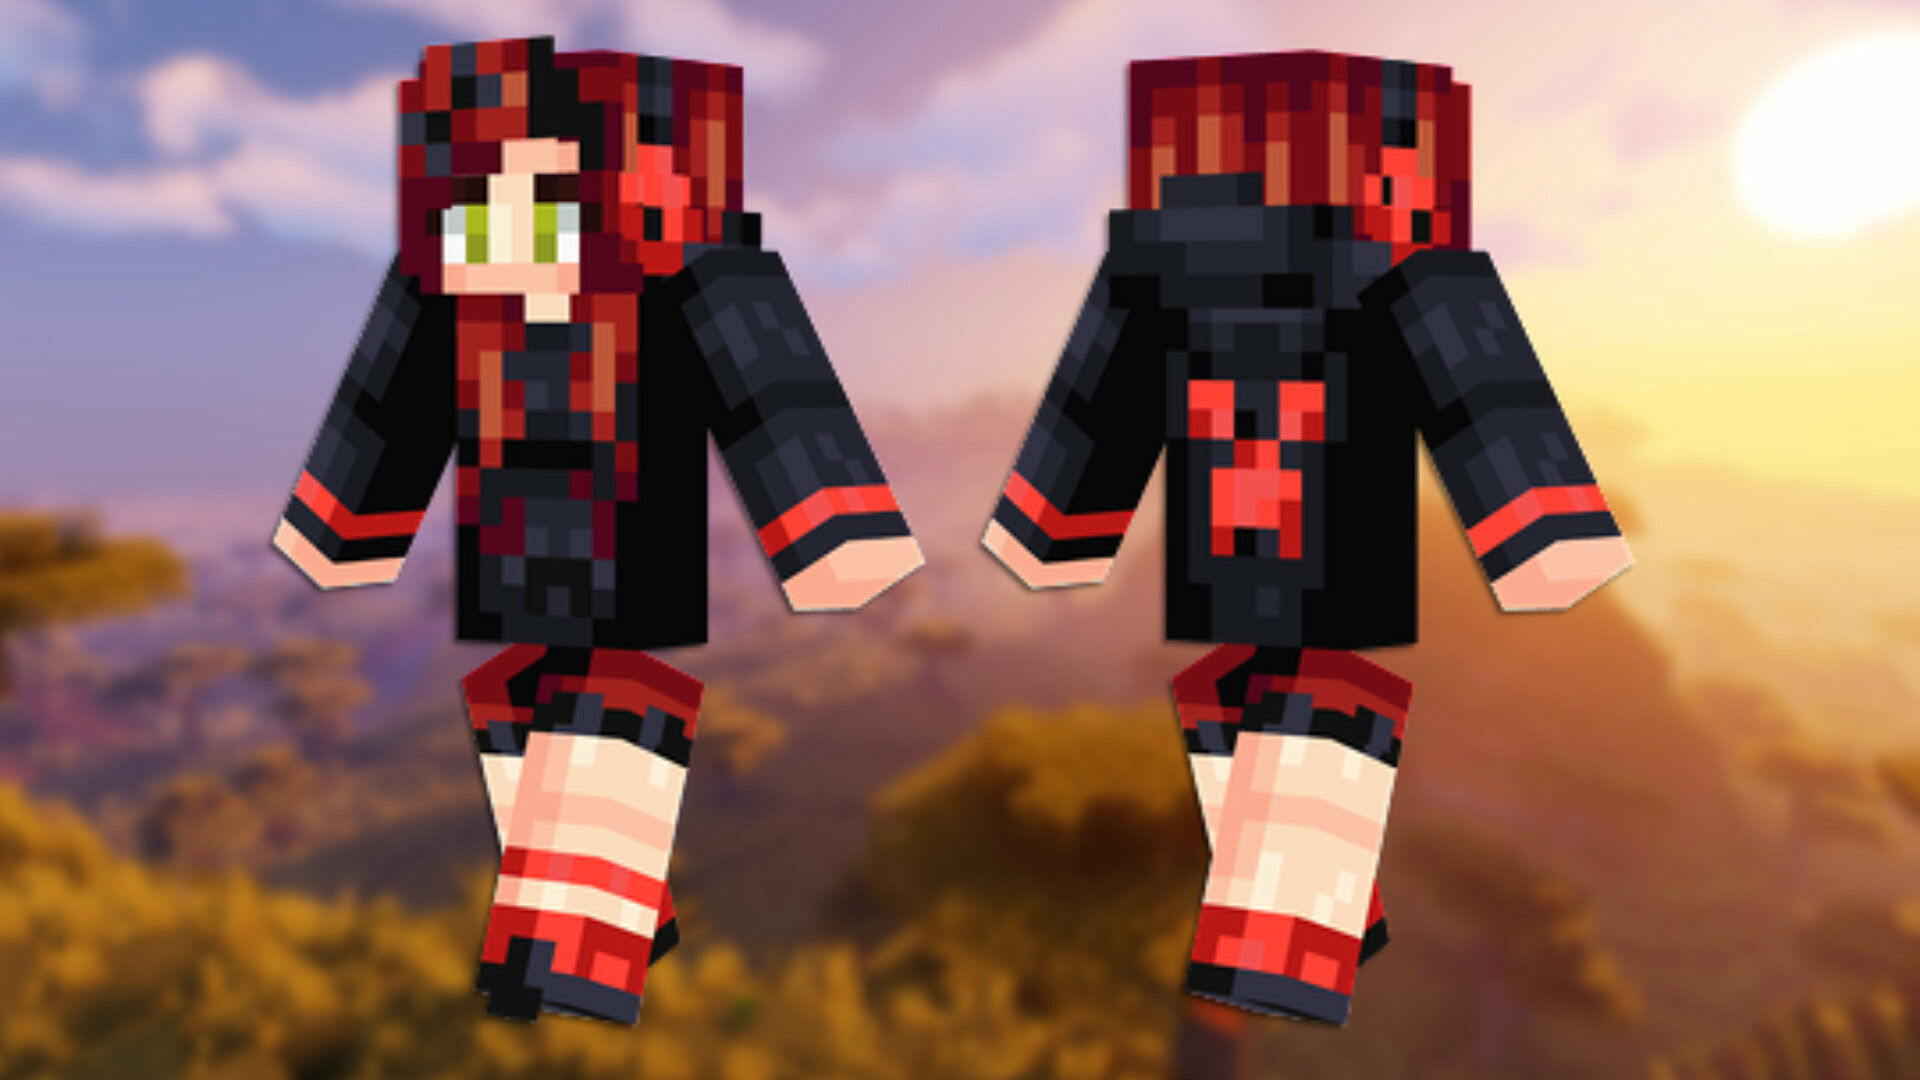 A front and back view of the Hulk Minecraft skin.